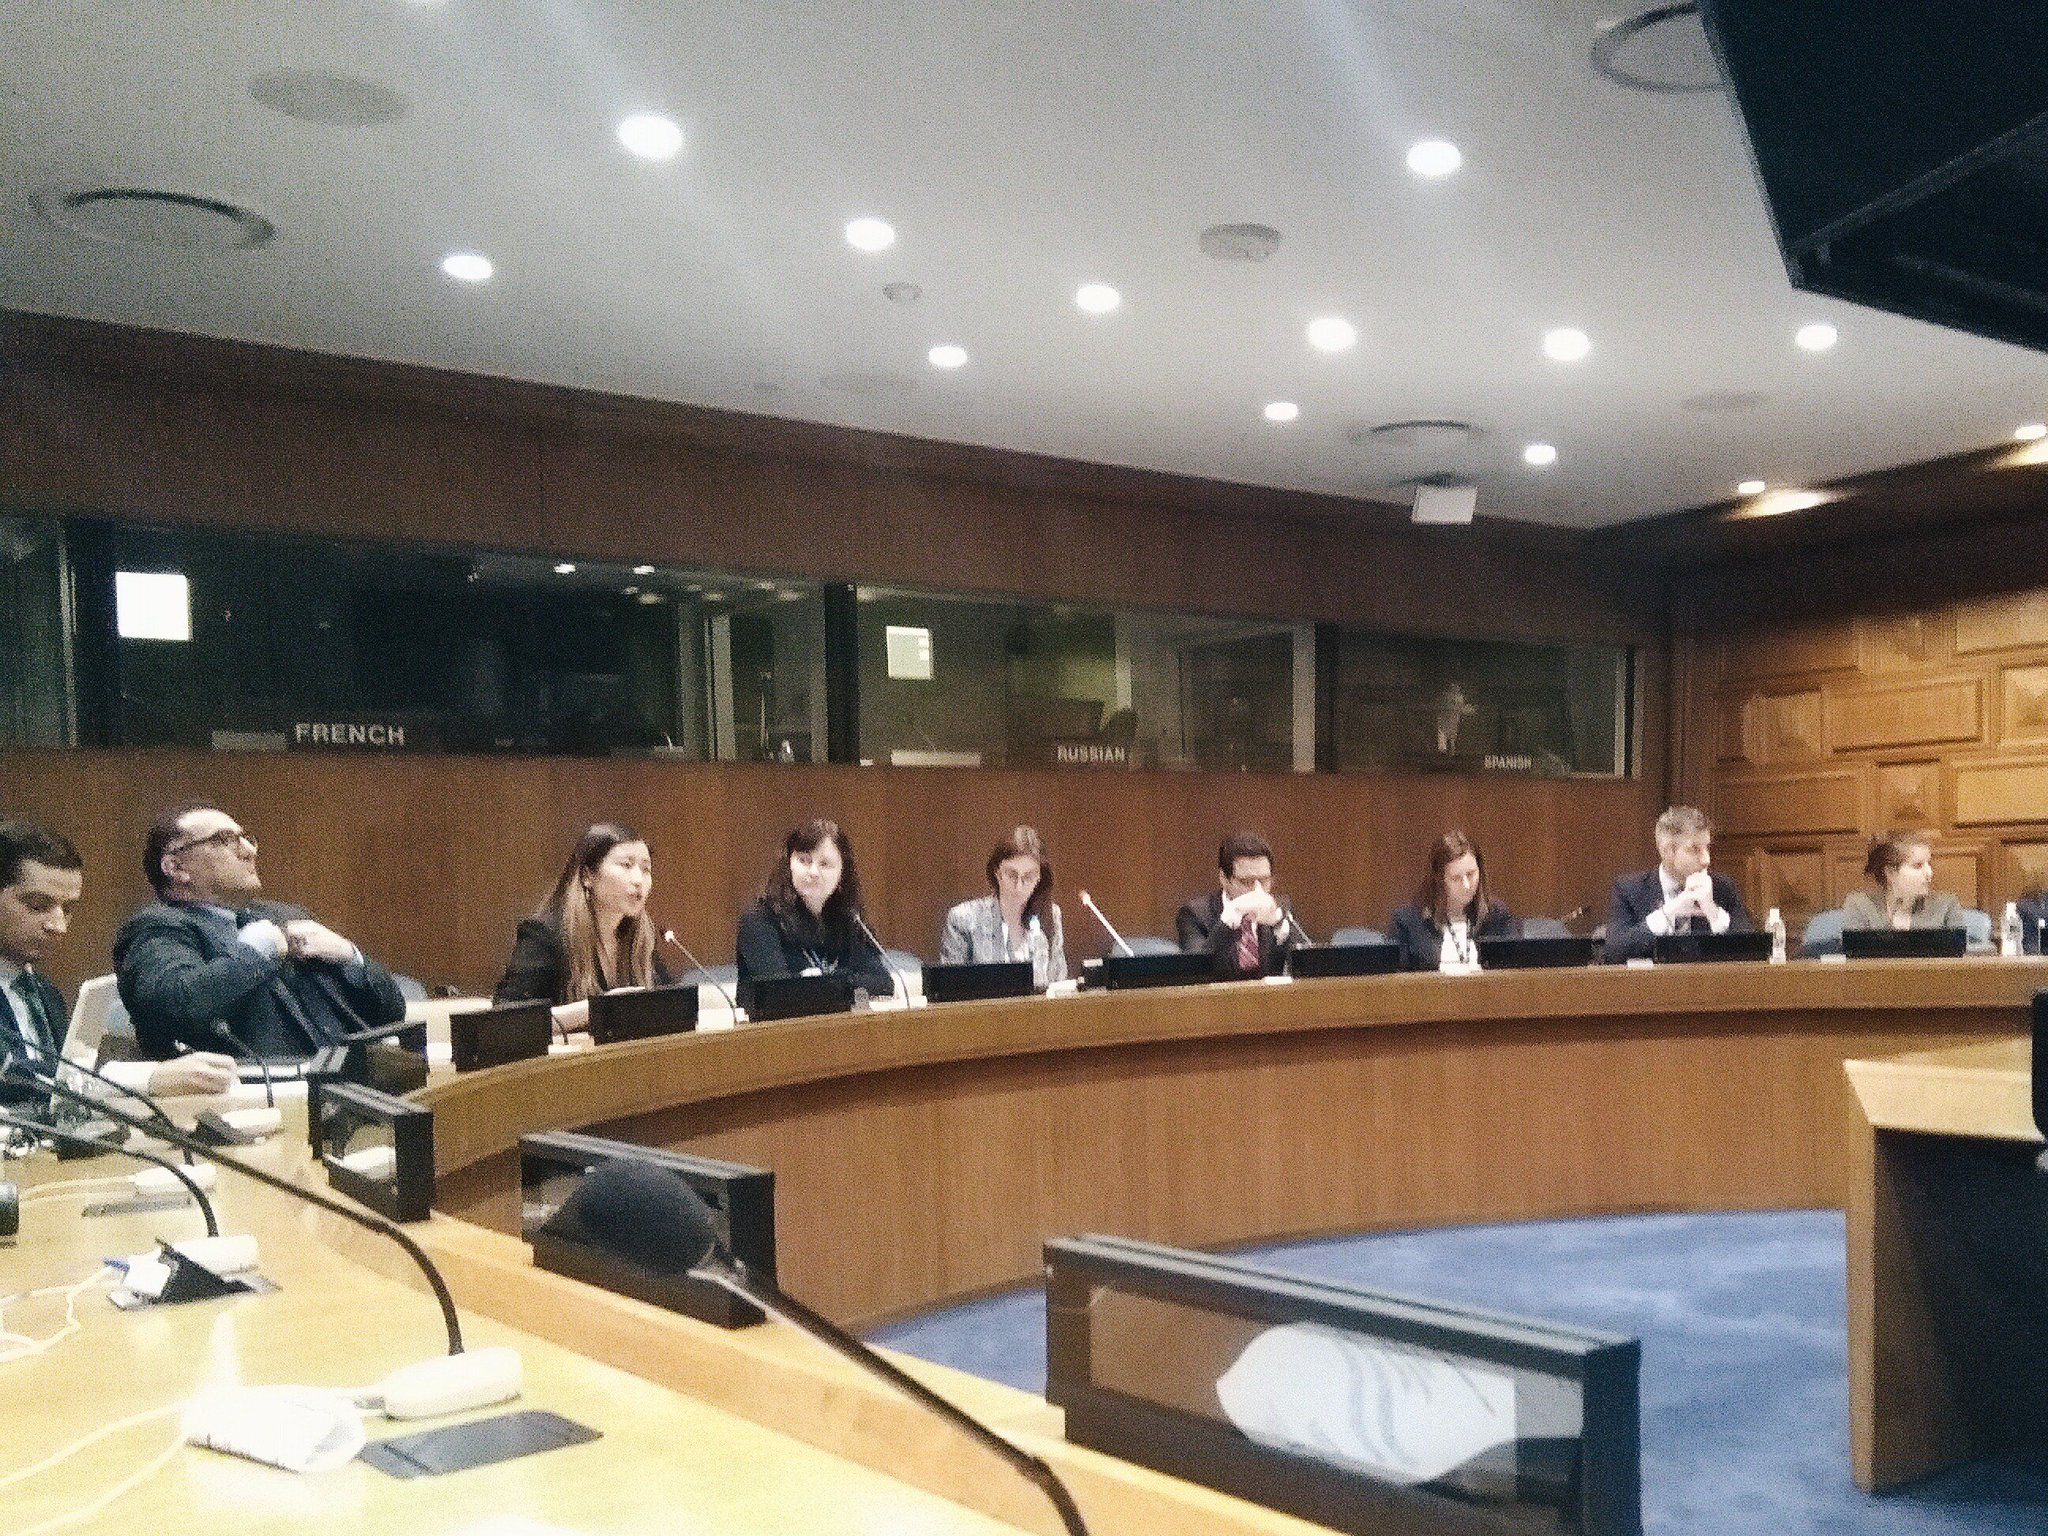 @zuzana_vuova giving an inside look on how Youth Delegates work. Let's get more programmes started! @UN4Youth #CSocD55 https://t.co/GYTXFYsuBf